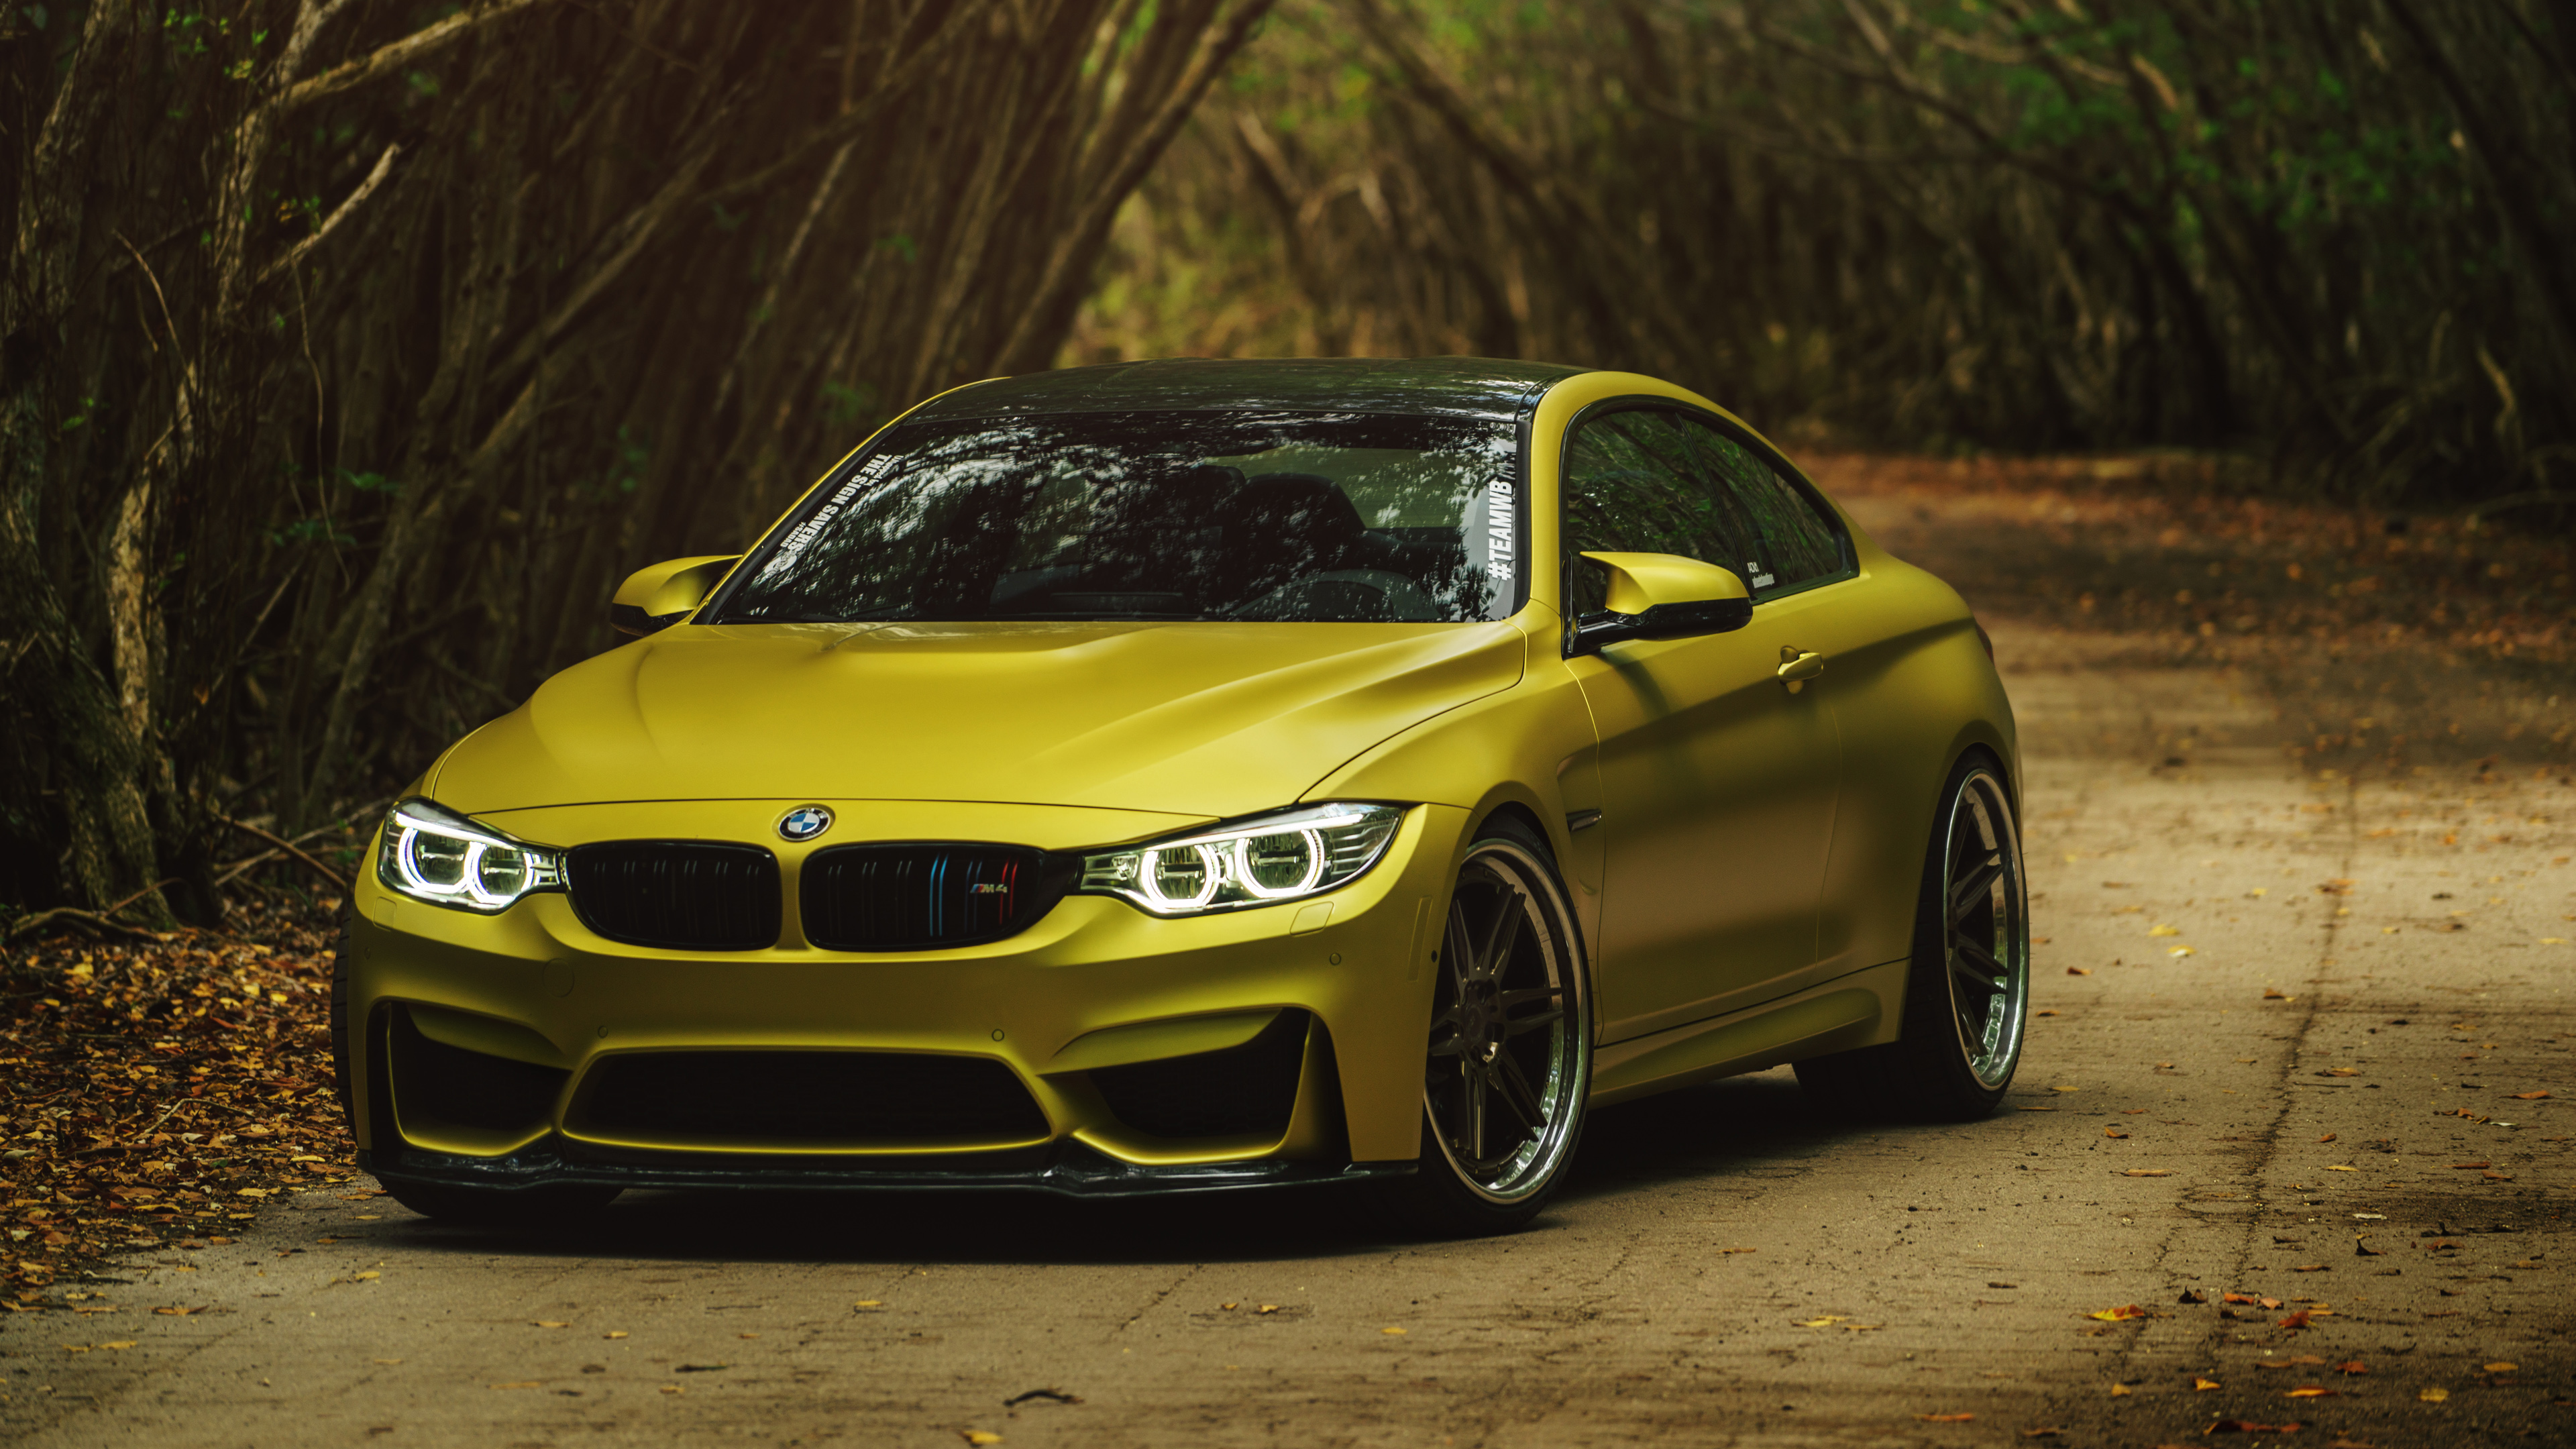 Adv1 Ss Austin Yellow Bmw M4 Wallpaper Hd Car Wallpapers Id 5543